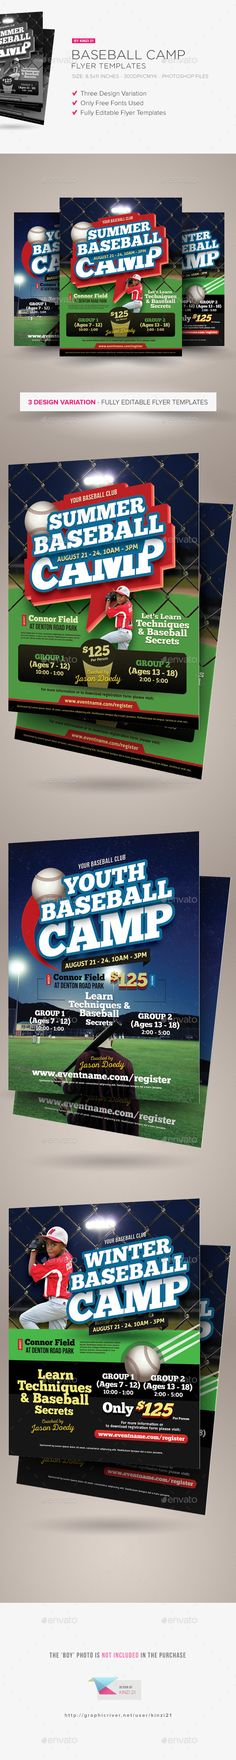 Baseball Camp Flyer Templates  #junior #camp #clinic • Click here to download ! http://graphicriver.net/item/baseball-camp-flyer-templates/14221231?ref=pxcr